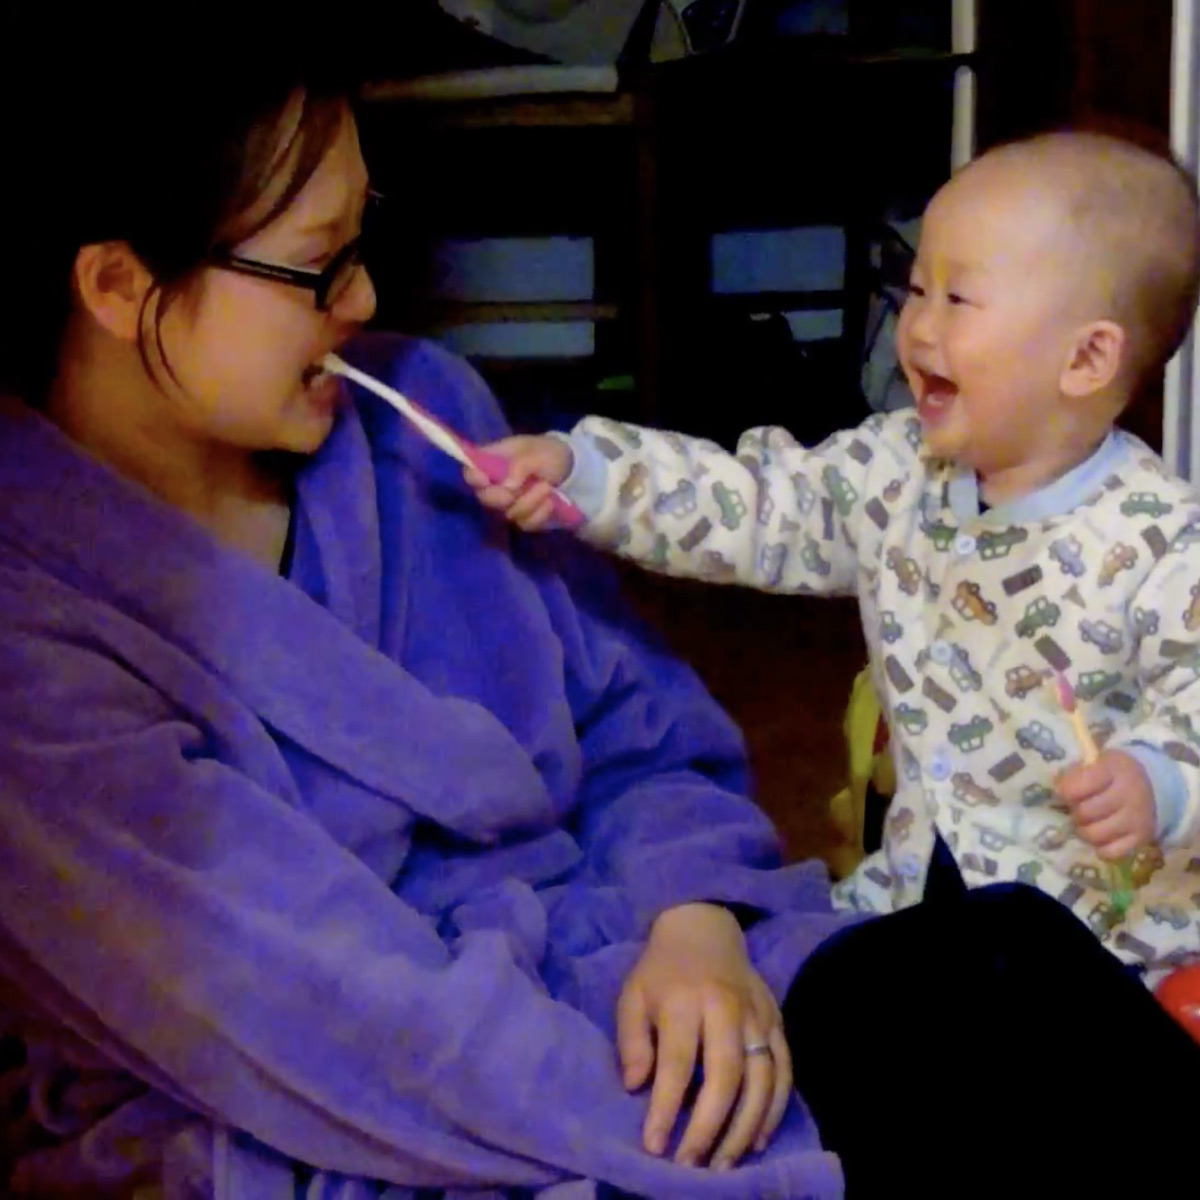 ORAL HYGIENE IS MORE FUN when you've got someone to brush with!